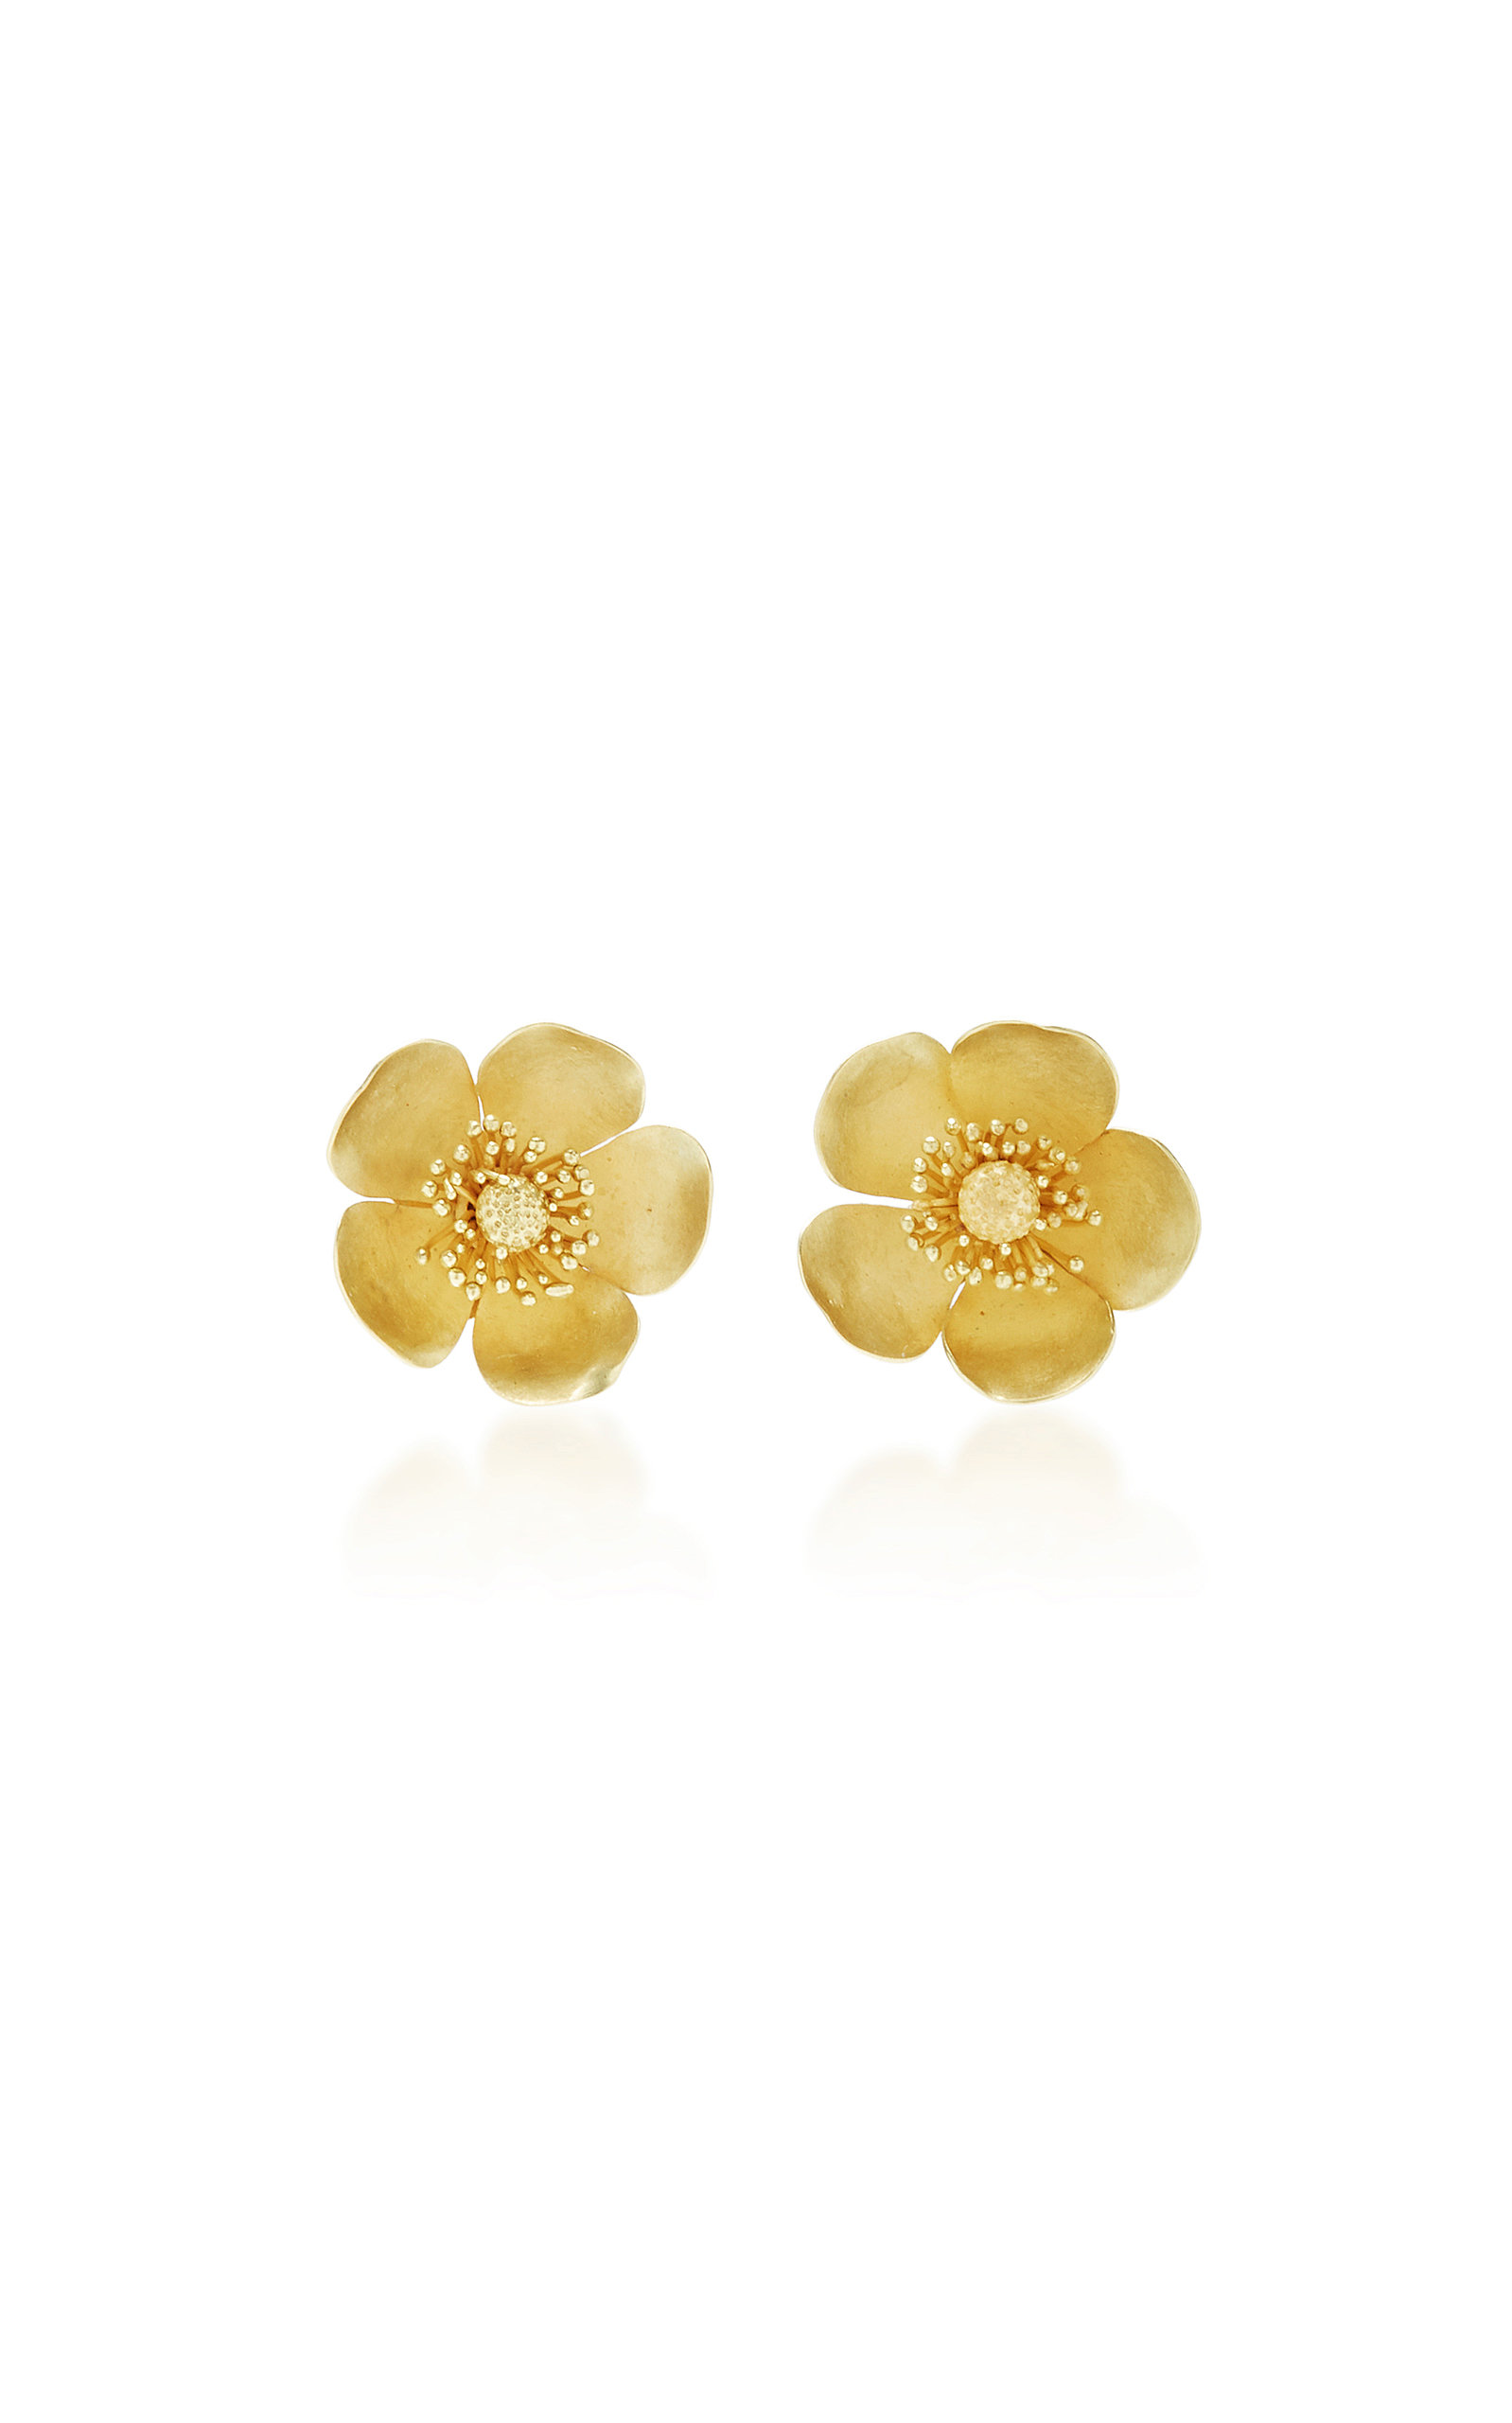 CHRISTOPHER THOMPSON ROYDS LIMITED EDITION BUTTERCUP STUD EARRINGS & PENDANT